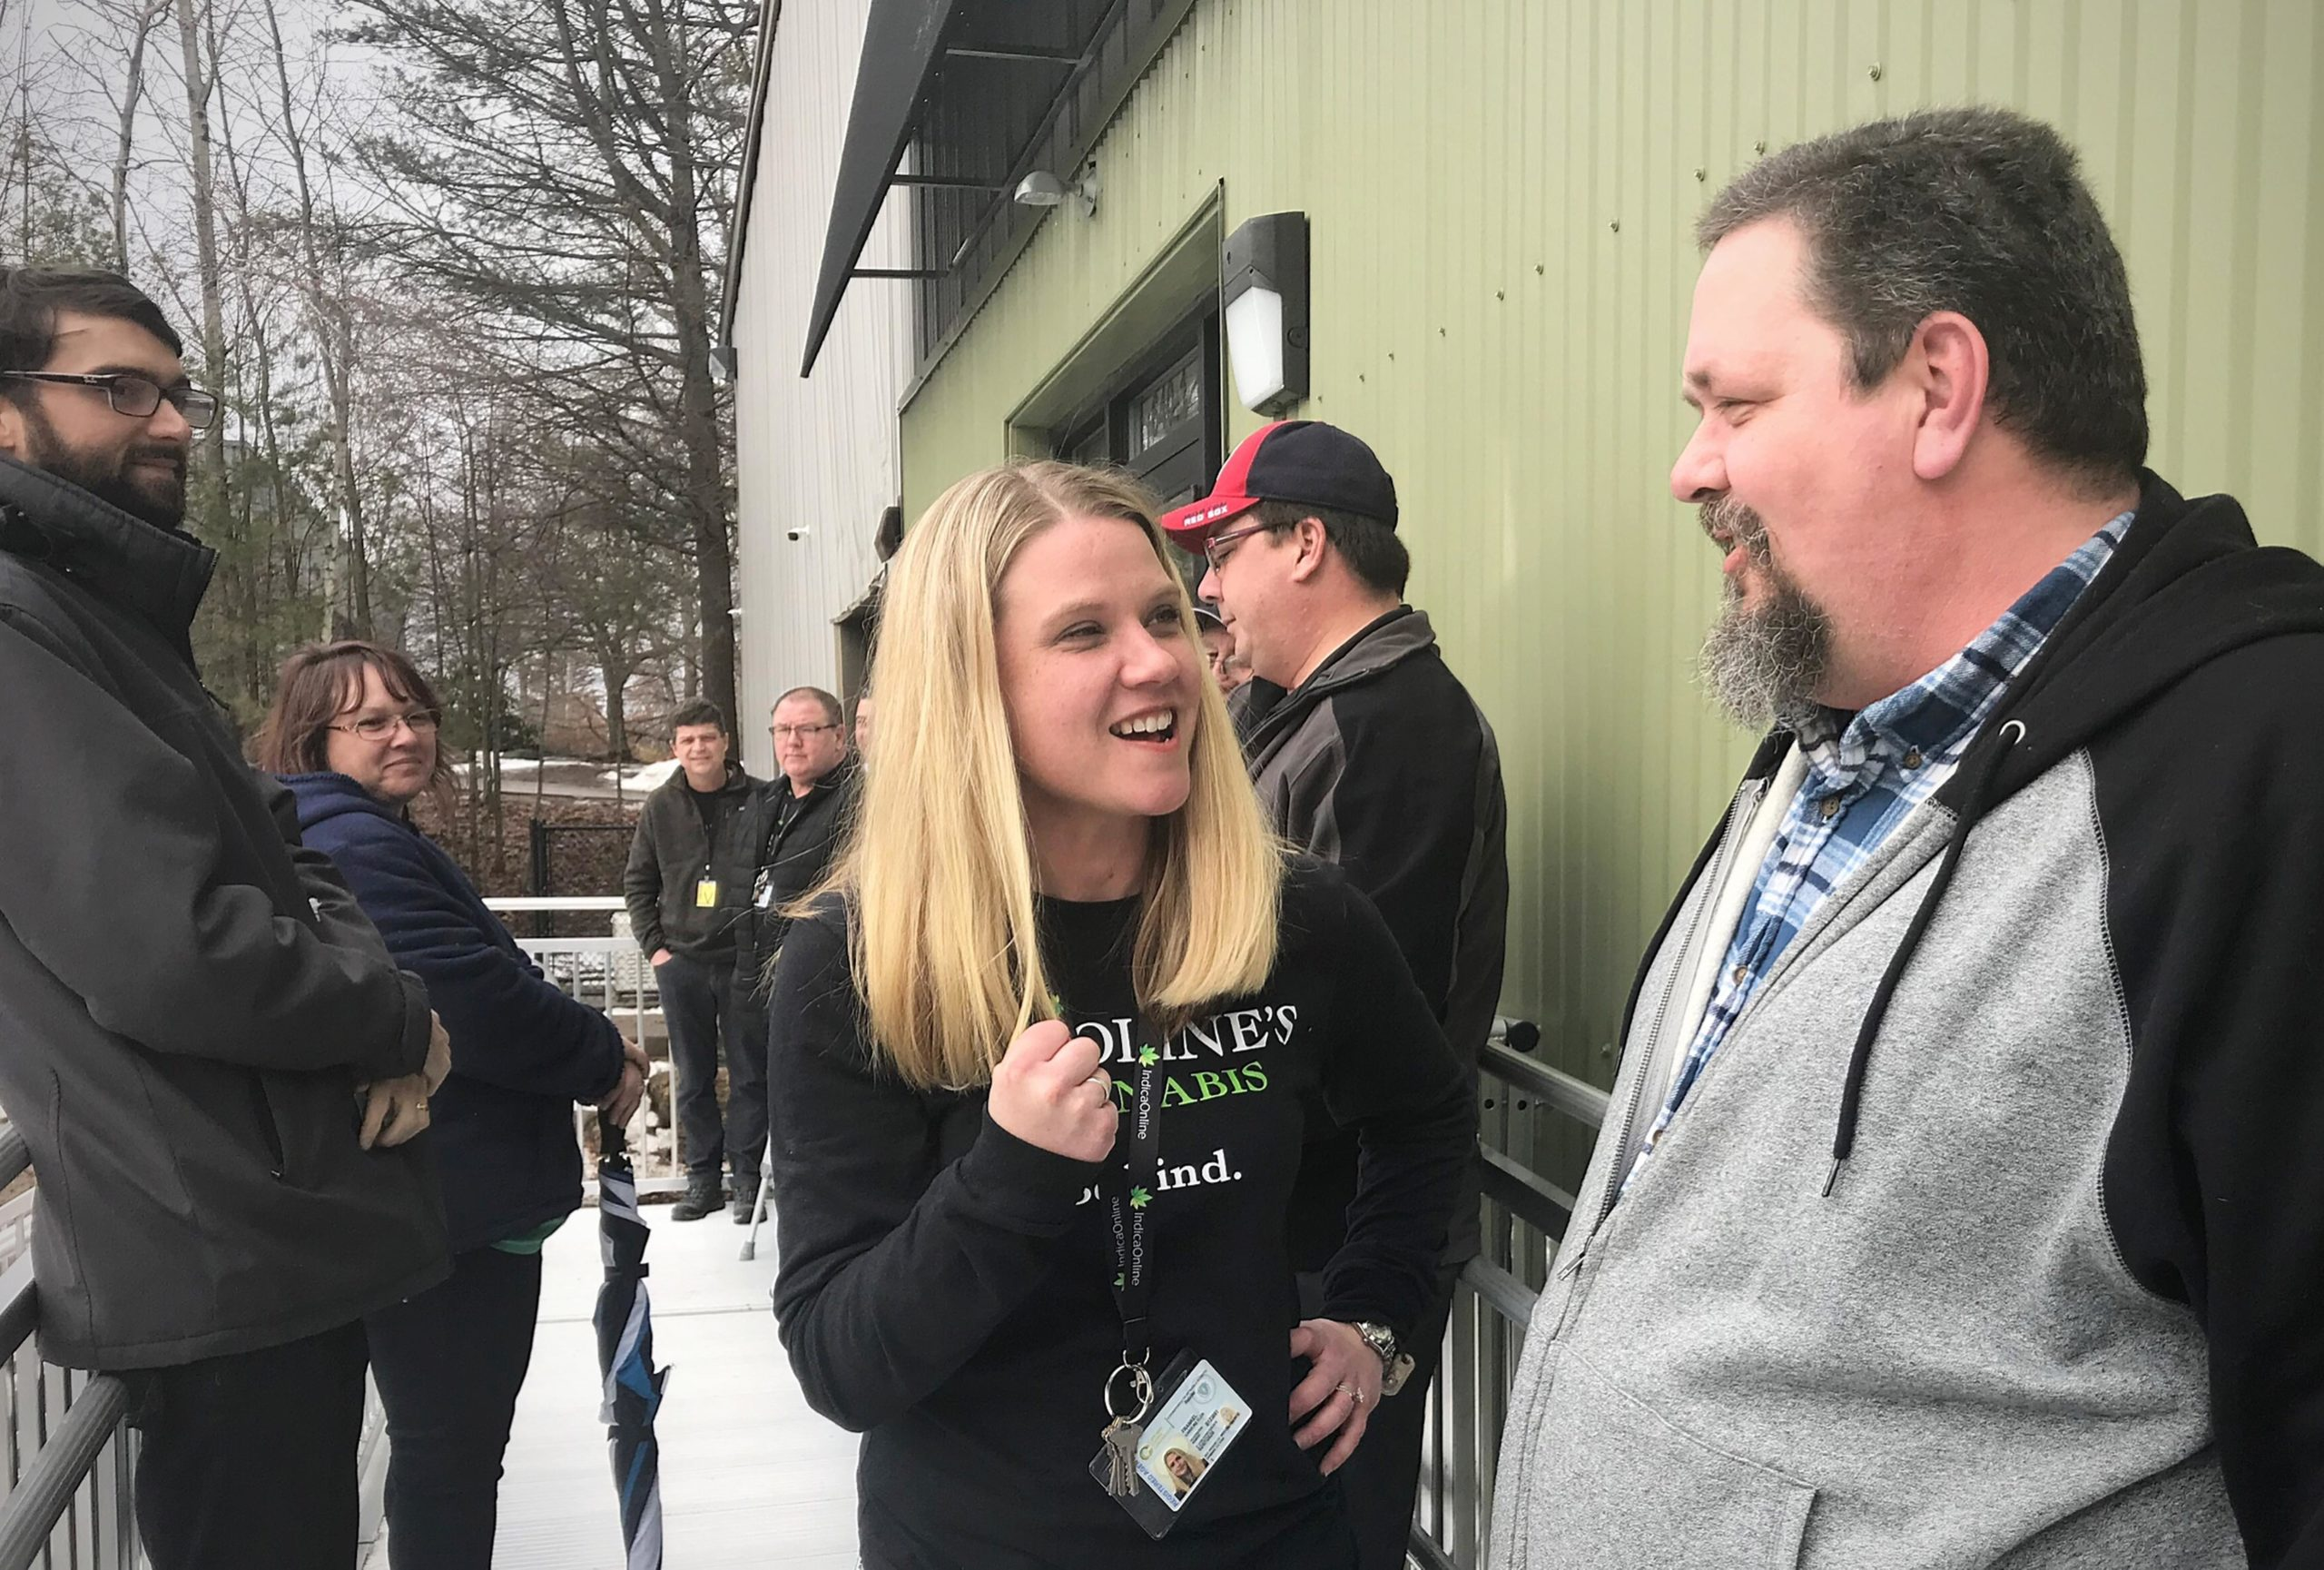 Caroline's Cannabis, pioneering marijuana business, opens in Uxbridge – News – Milford Daily News